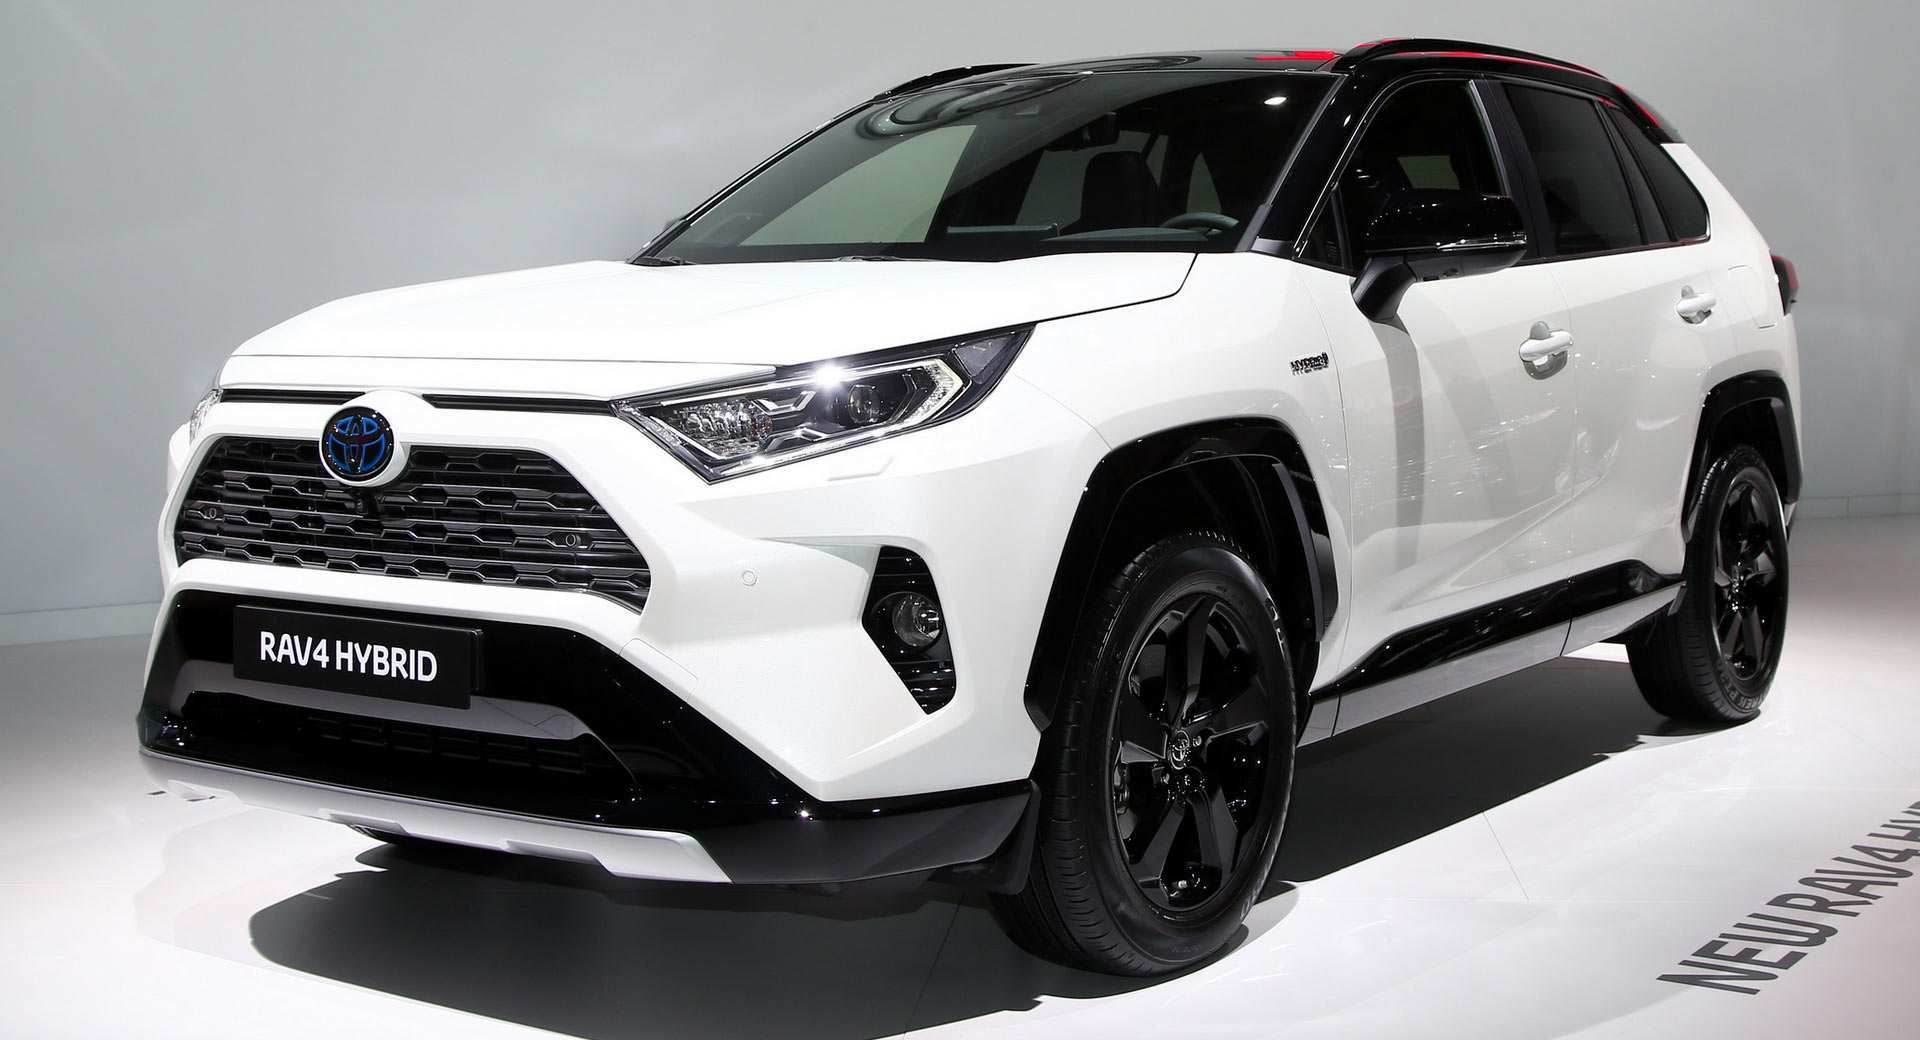 58 The Best 2019 Toyota Rav4 Hybrid Price Design And Review